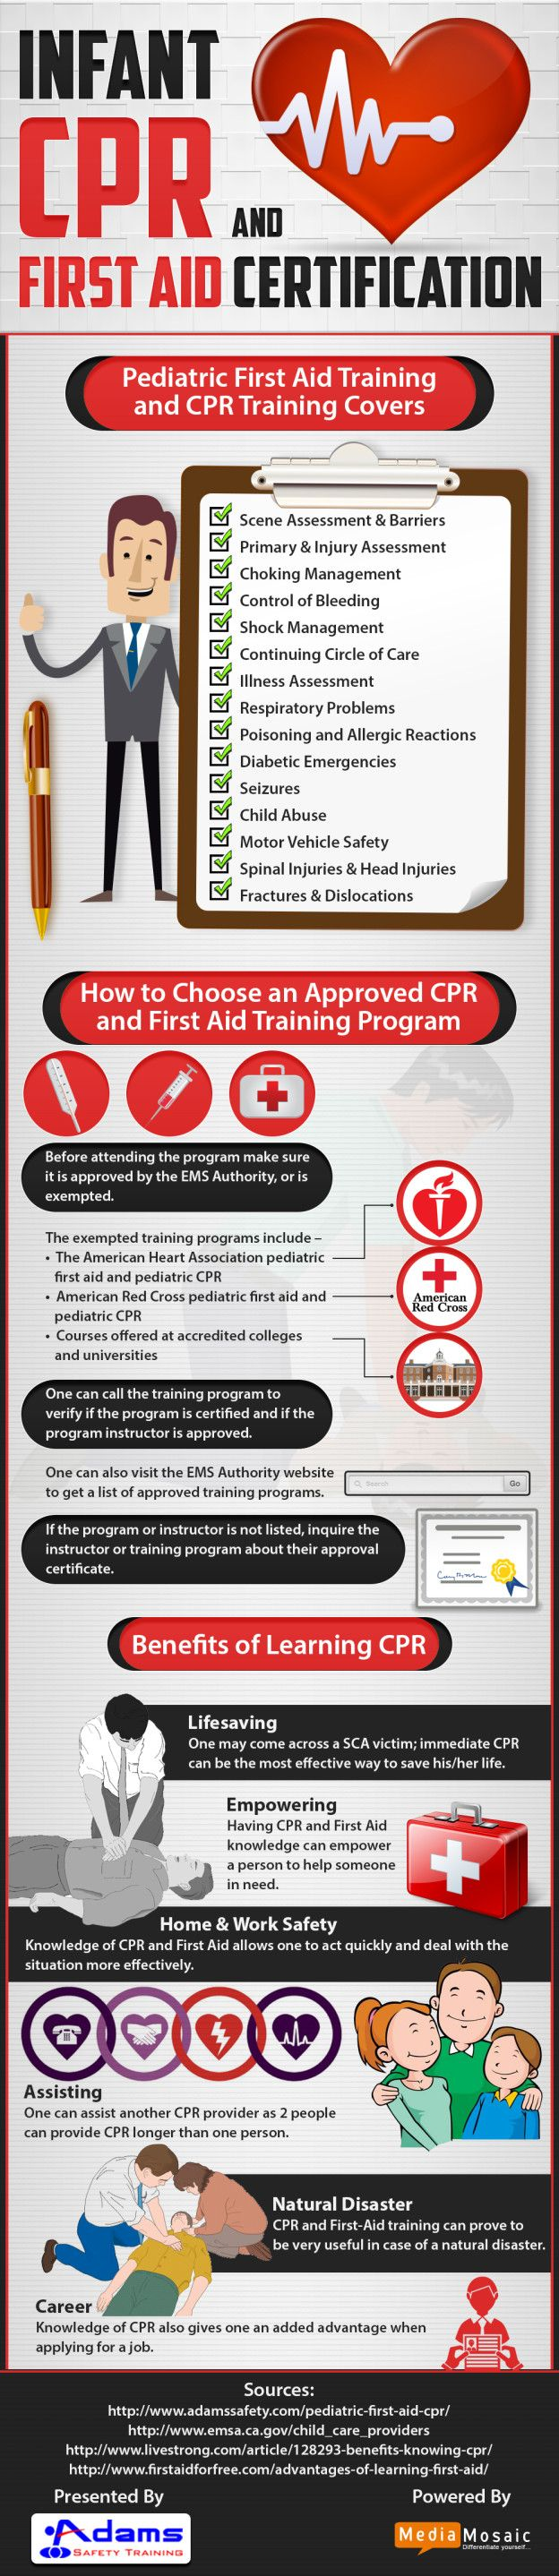 Best 25 cardiopulmonary resuscitation ideas on pinterest kids infant cpr and first aid certification infographic xflitez Image collections